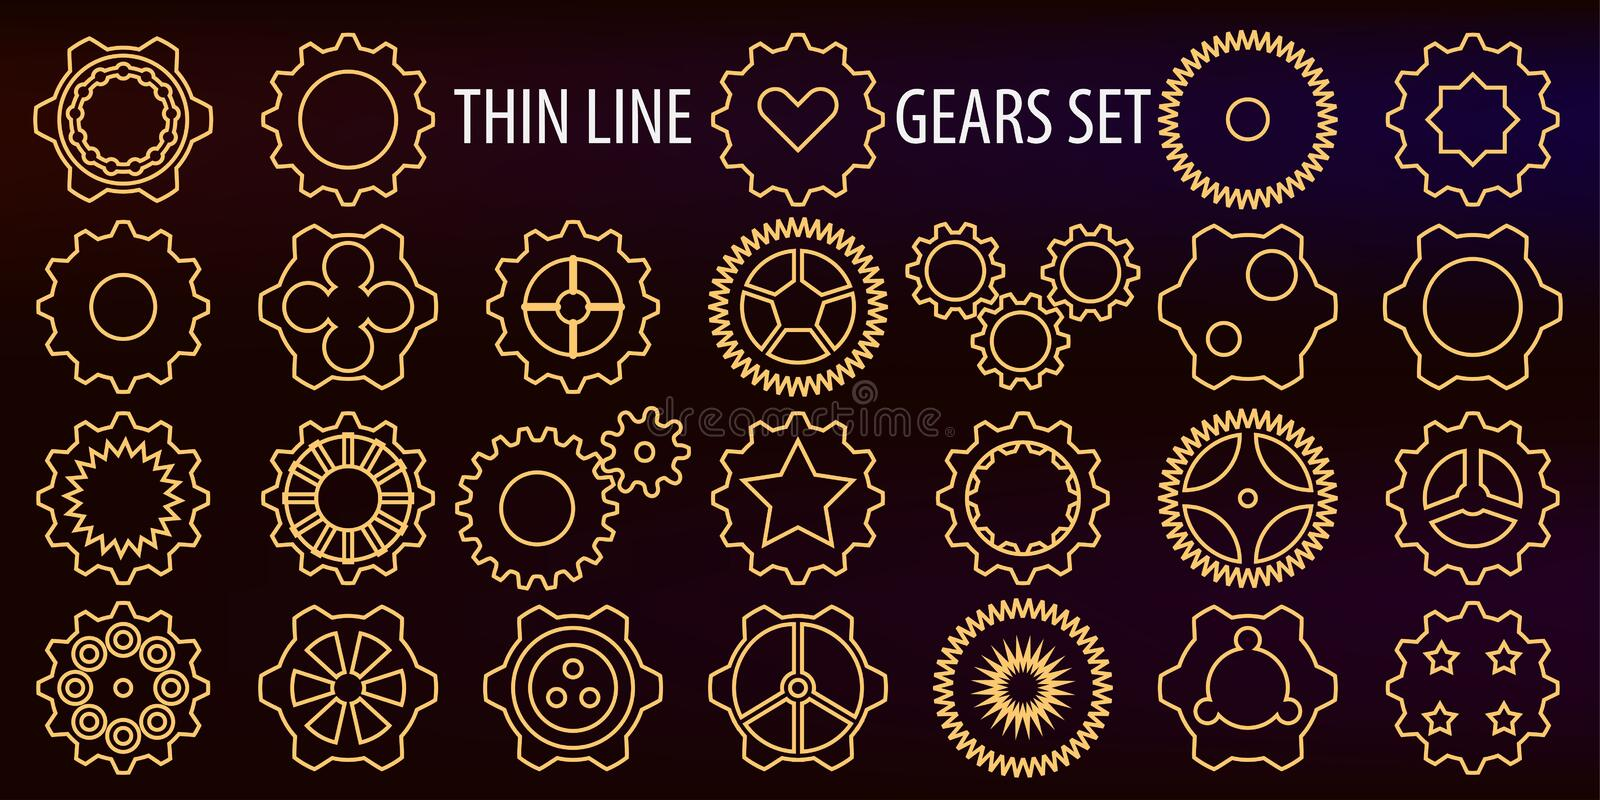 Vector illustration. A set of icons in the form of thin line gears as a symbol of machanica, engine work, architecture and ideas f vector illustration